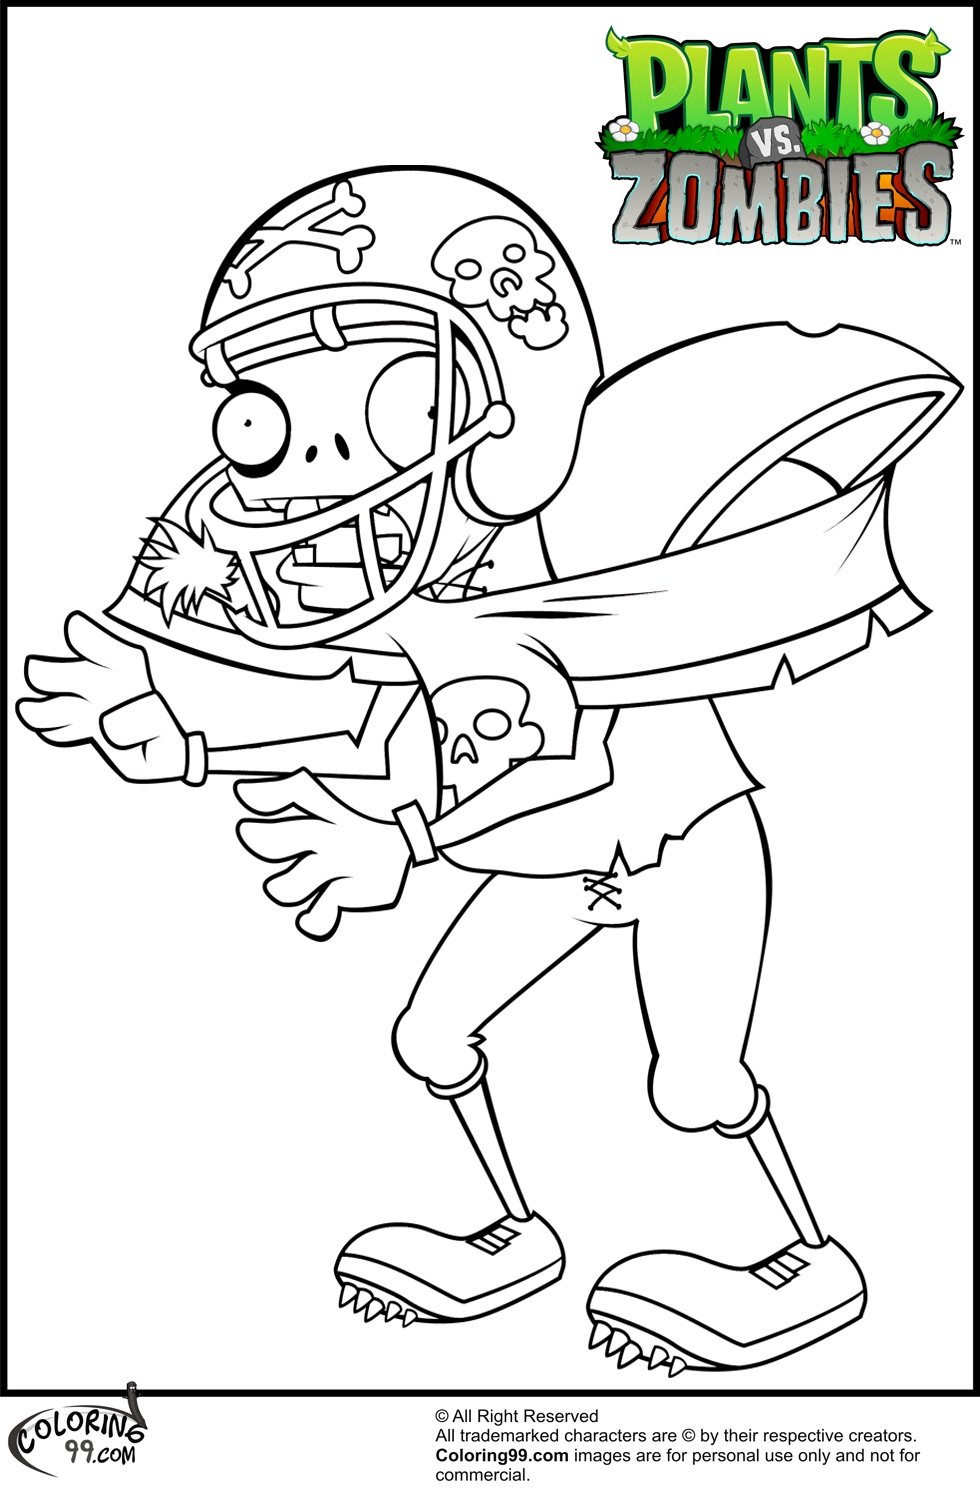 980x1500 Plants Vs Zombies Coloring Pages To Print Free Coloring Sheets